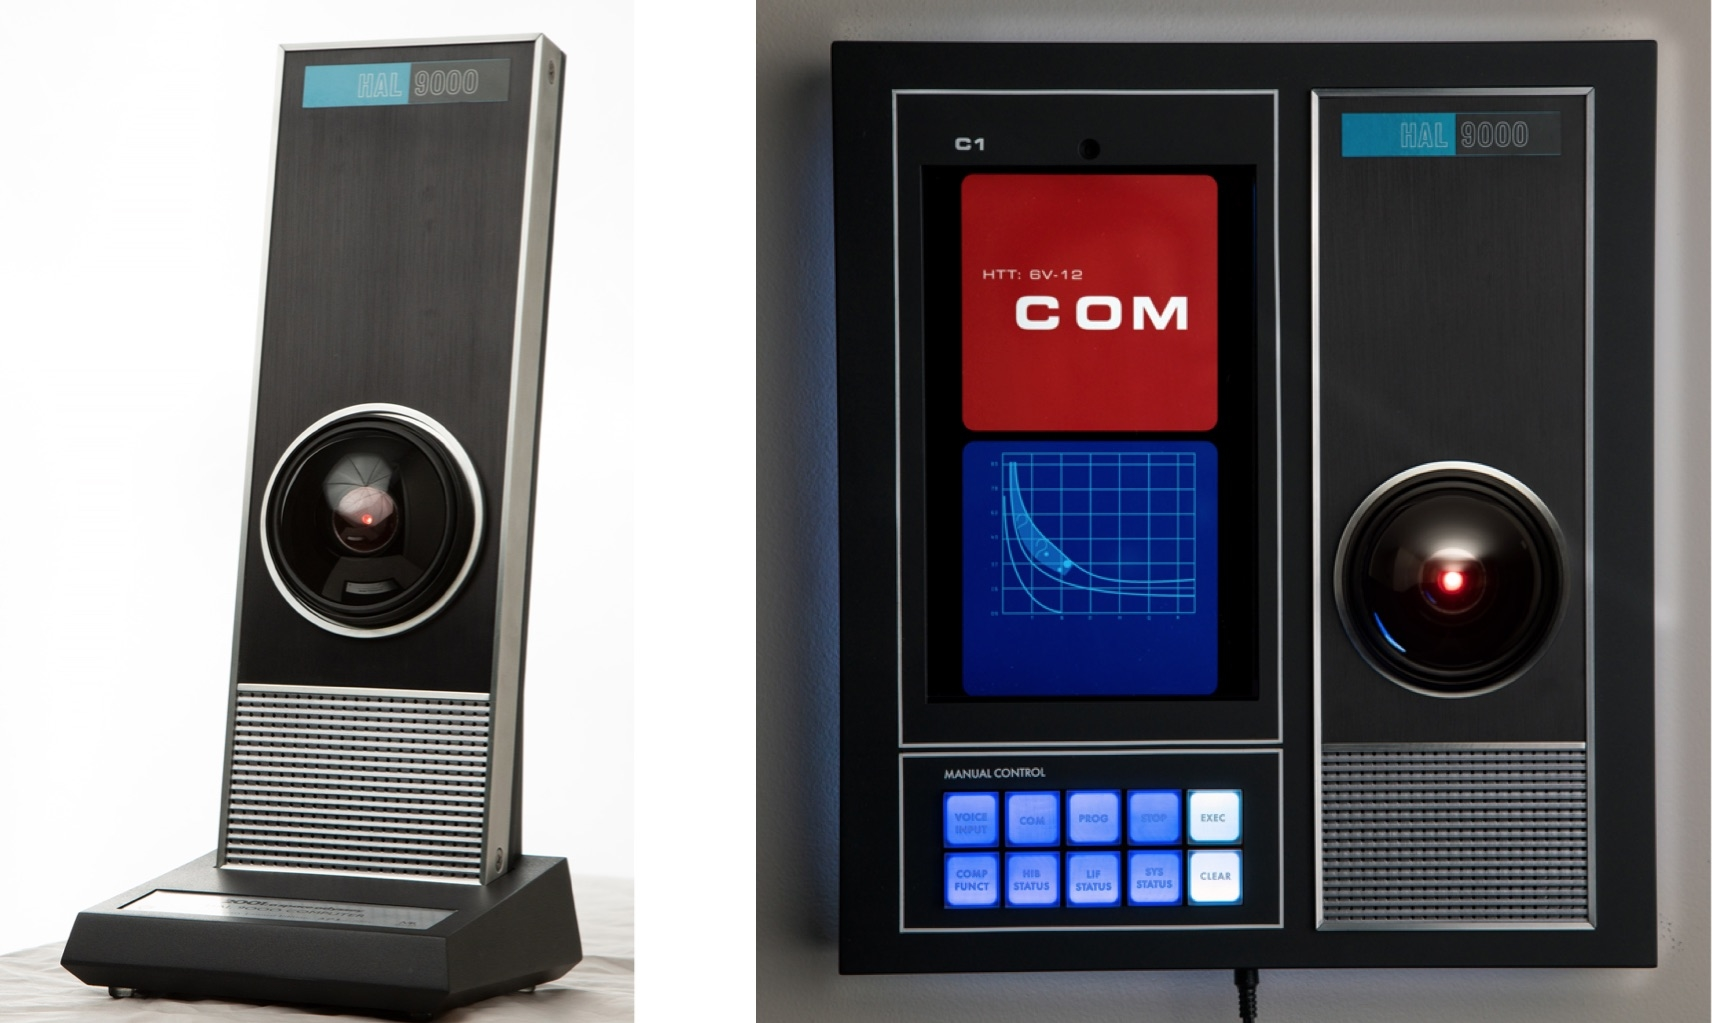 This HAL 9000 replica with Amazon Alexa support totally won't try to murder you or anything